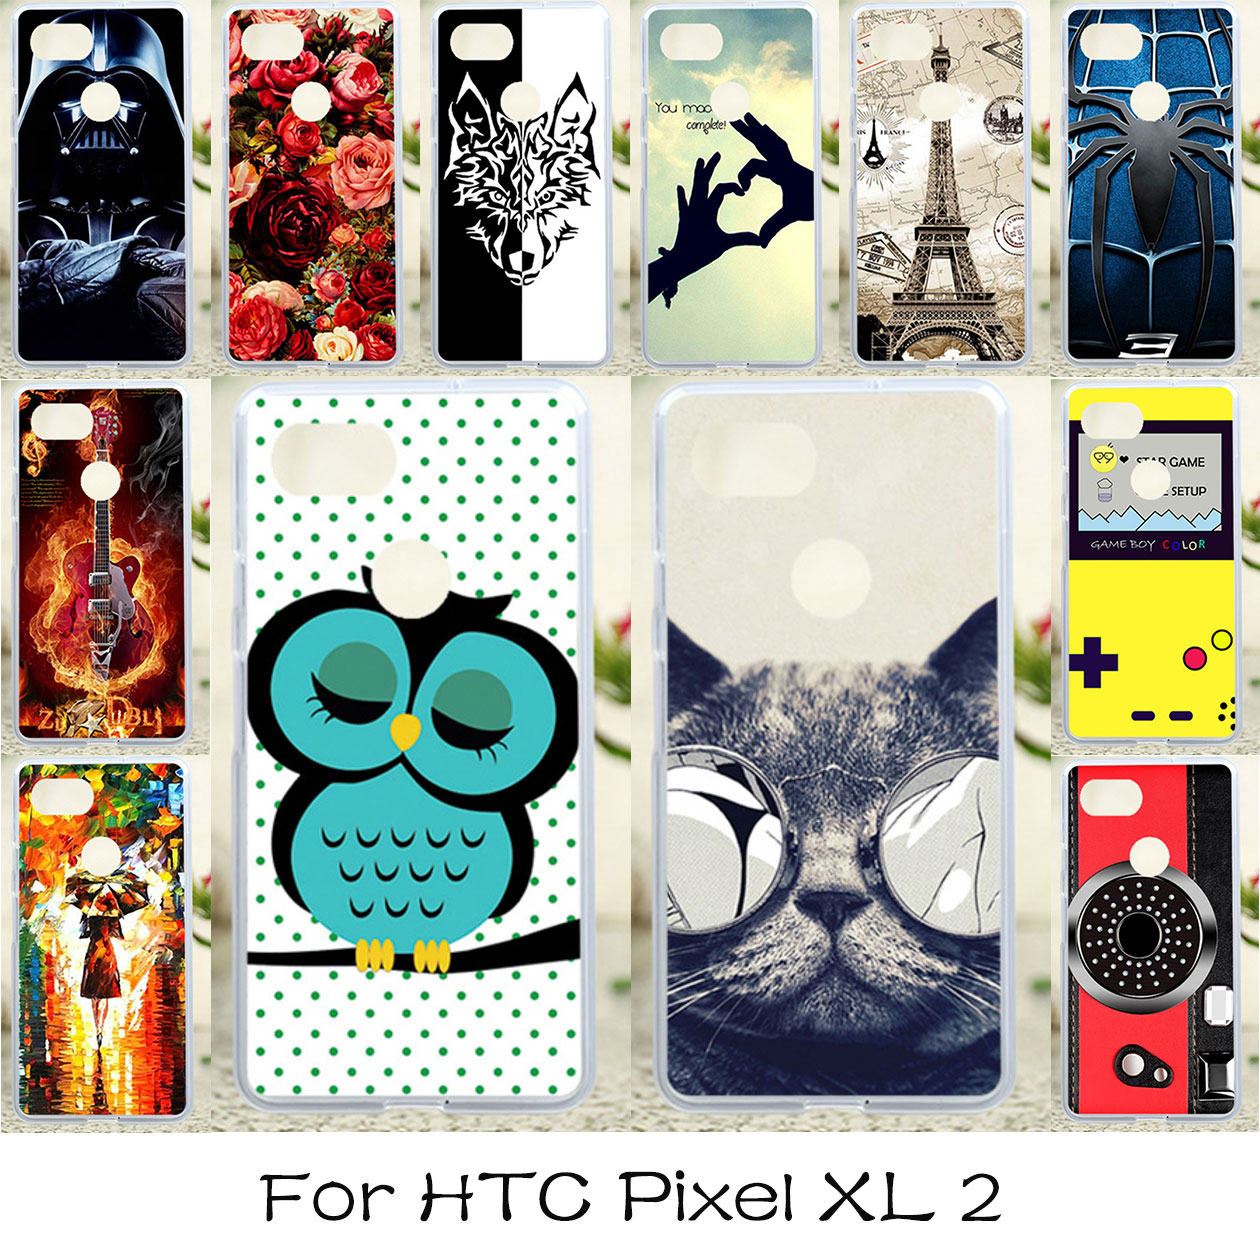 Case Soft For HTC Pixel XL 2 Case Anti-Knock For HTC Google Pixel XL2 Soft Silicone DIY For HTC Pixel XL 2 Cases